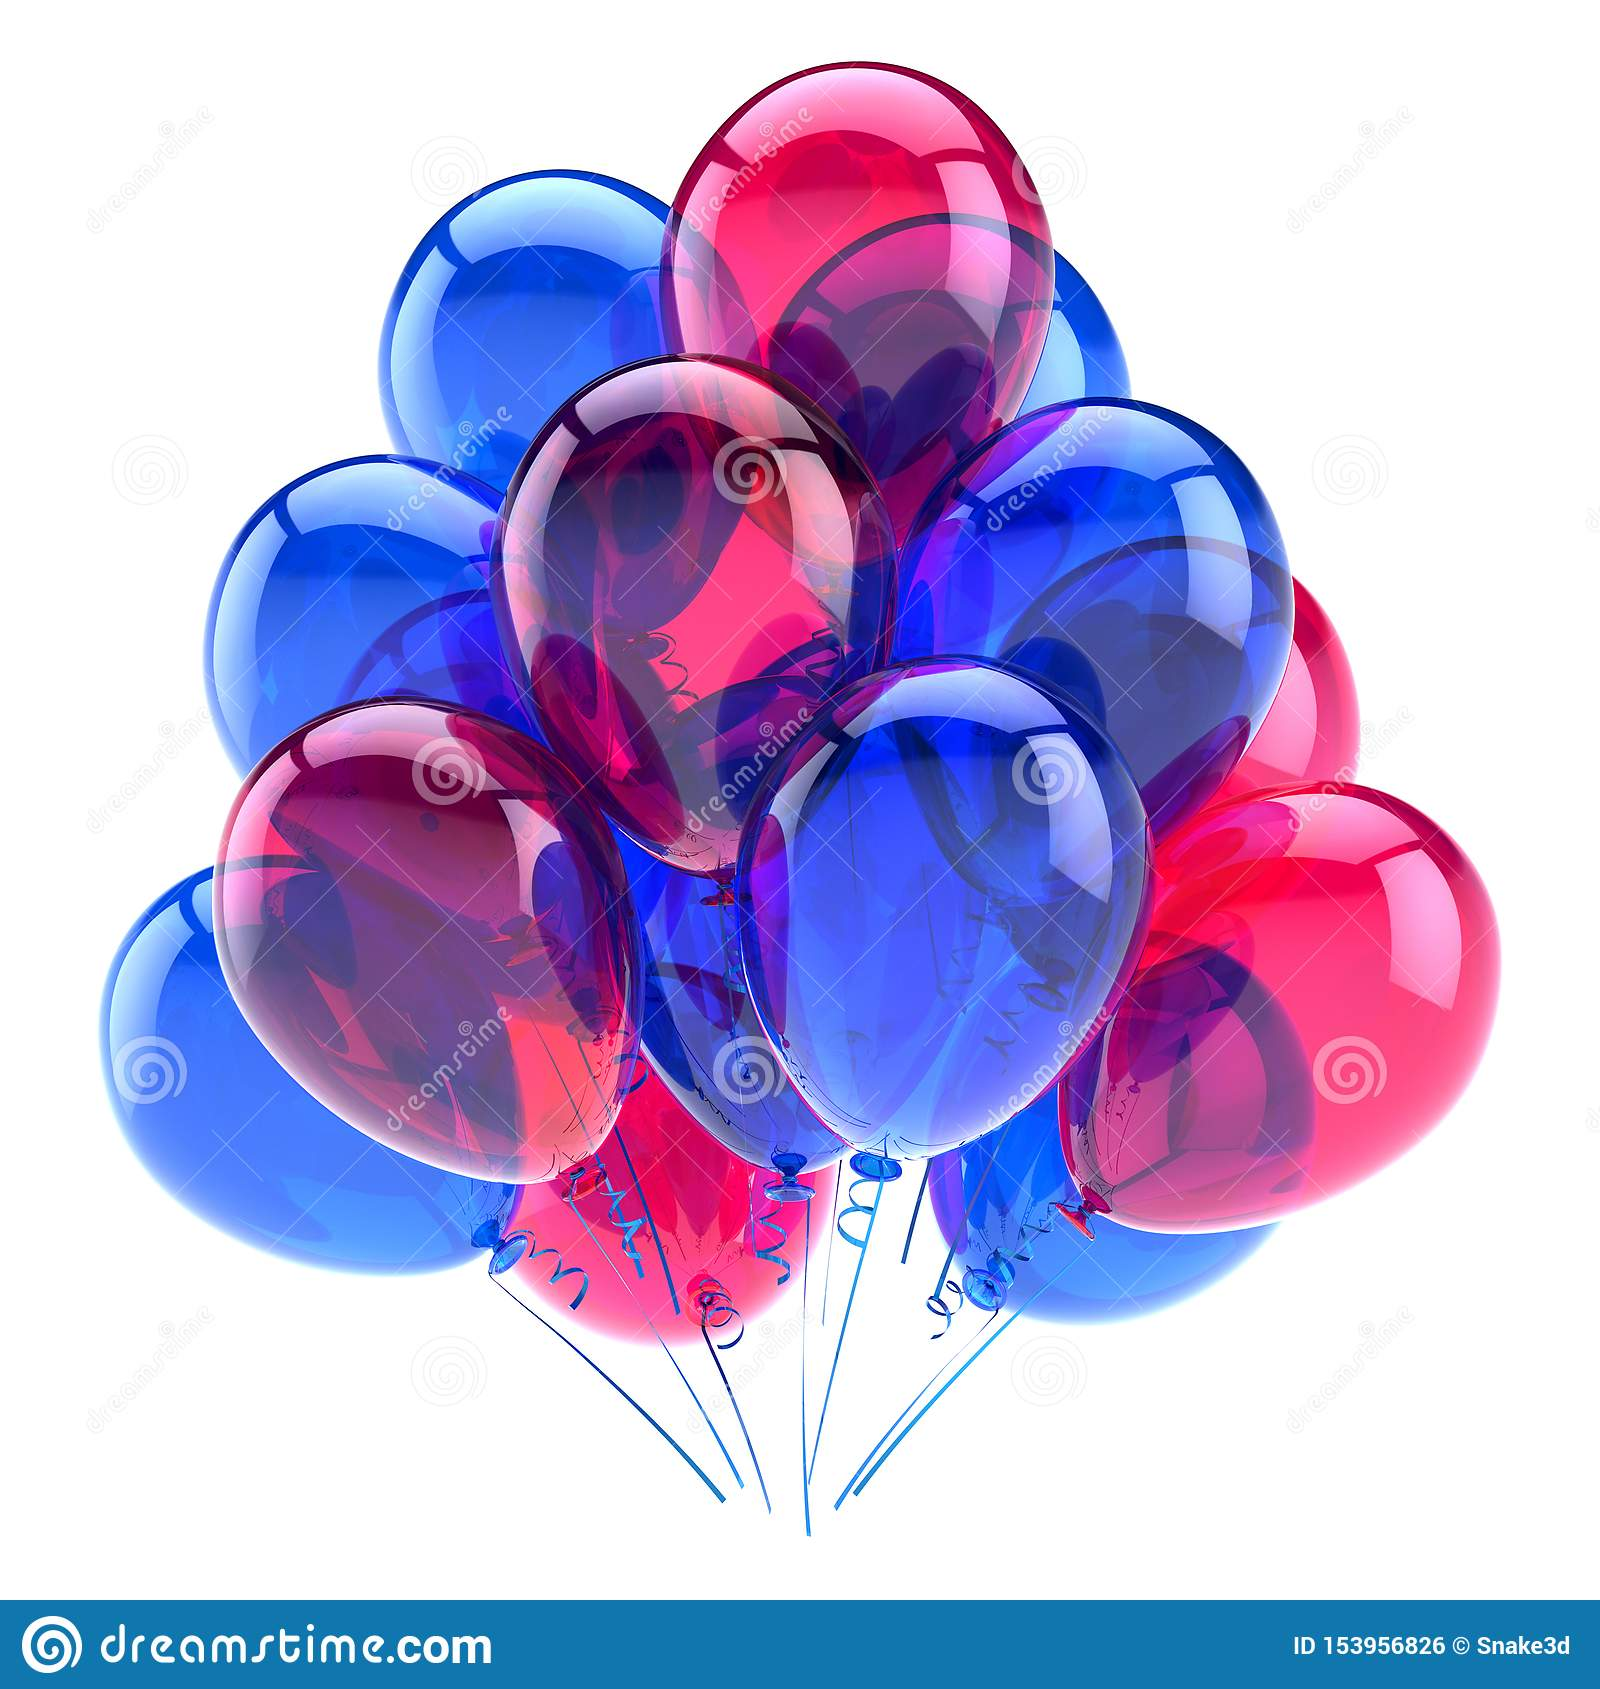 Colorful decoration for birthday party celebration. Helium balloons